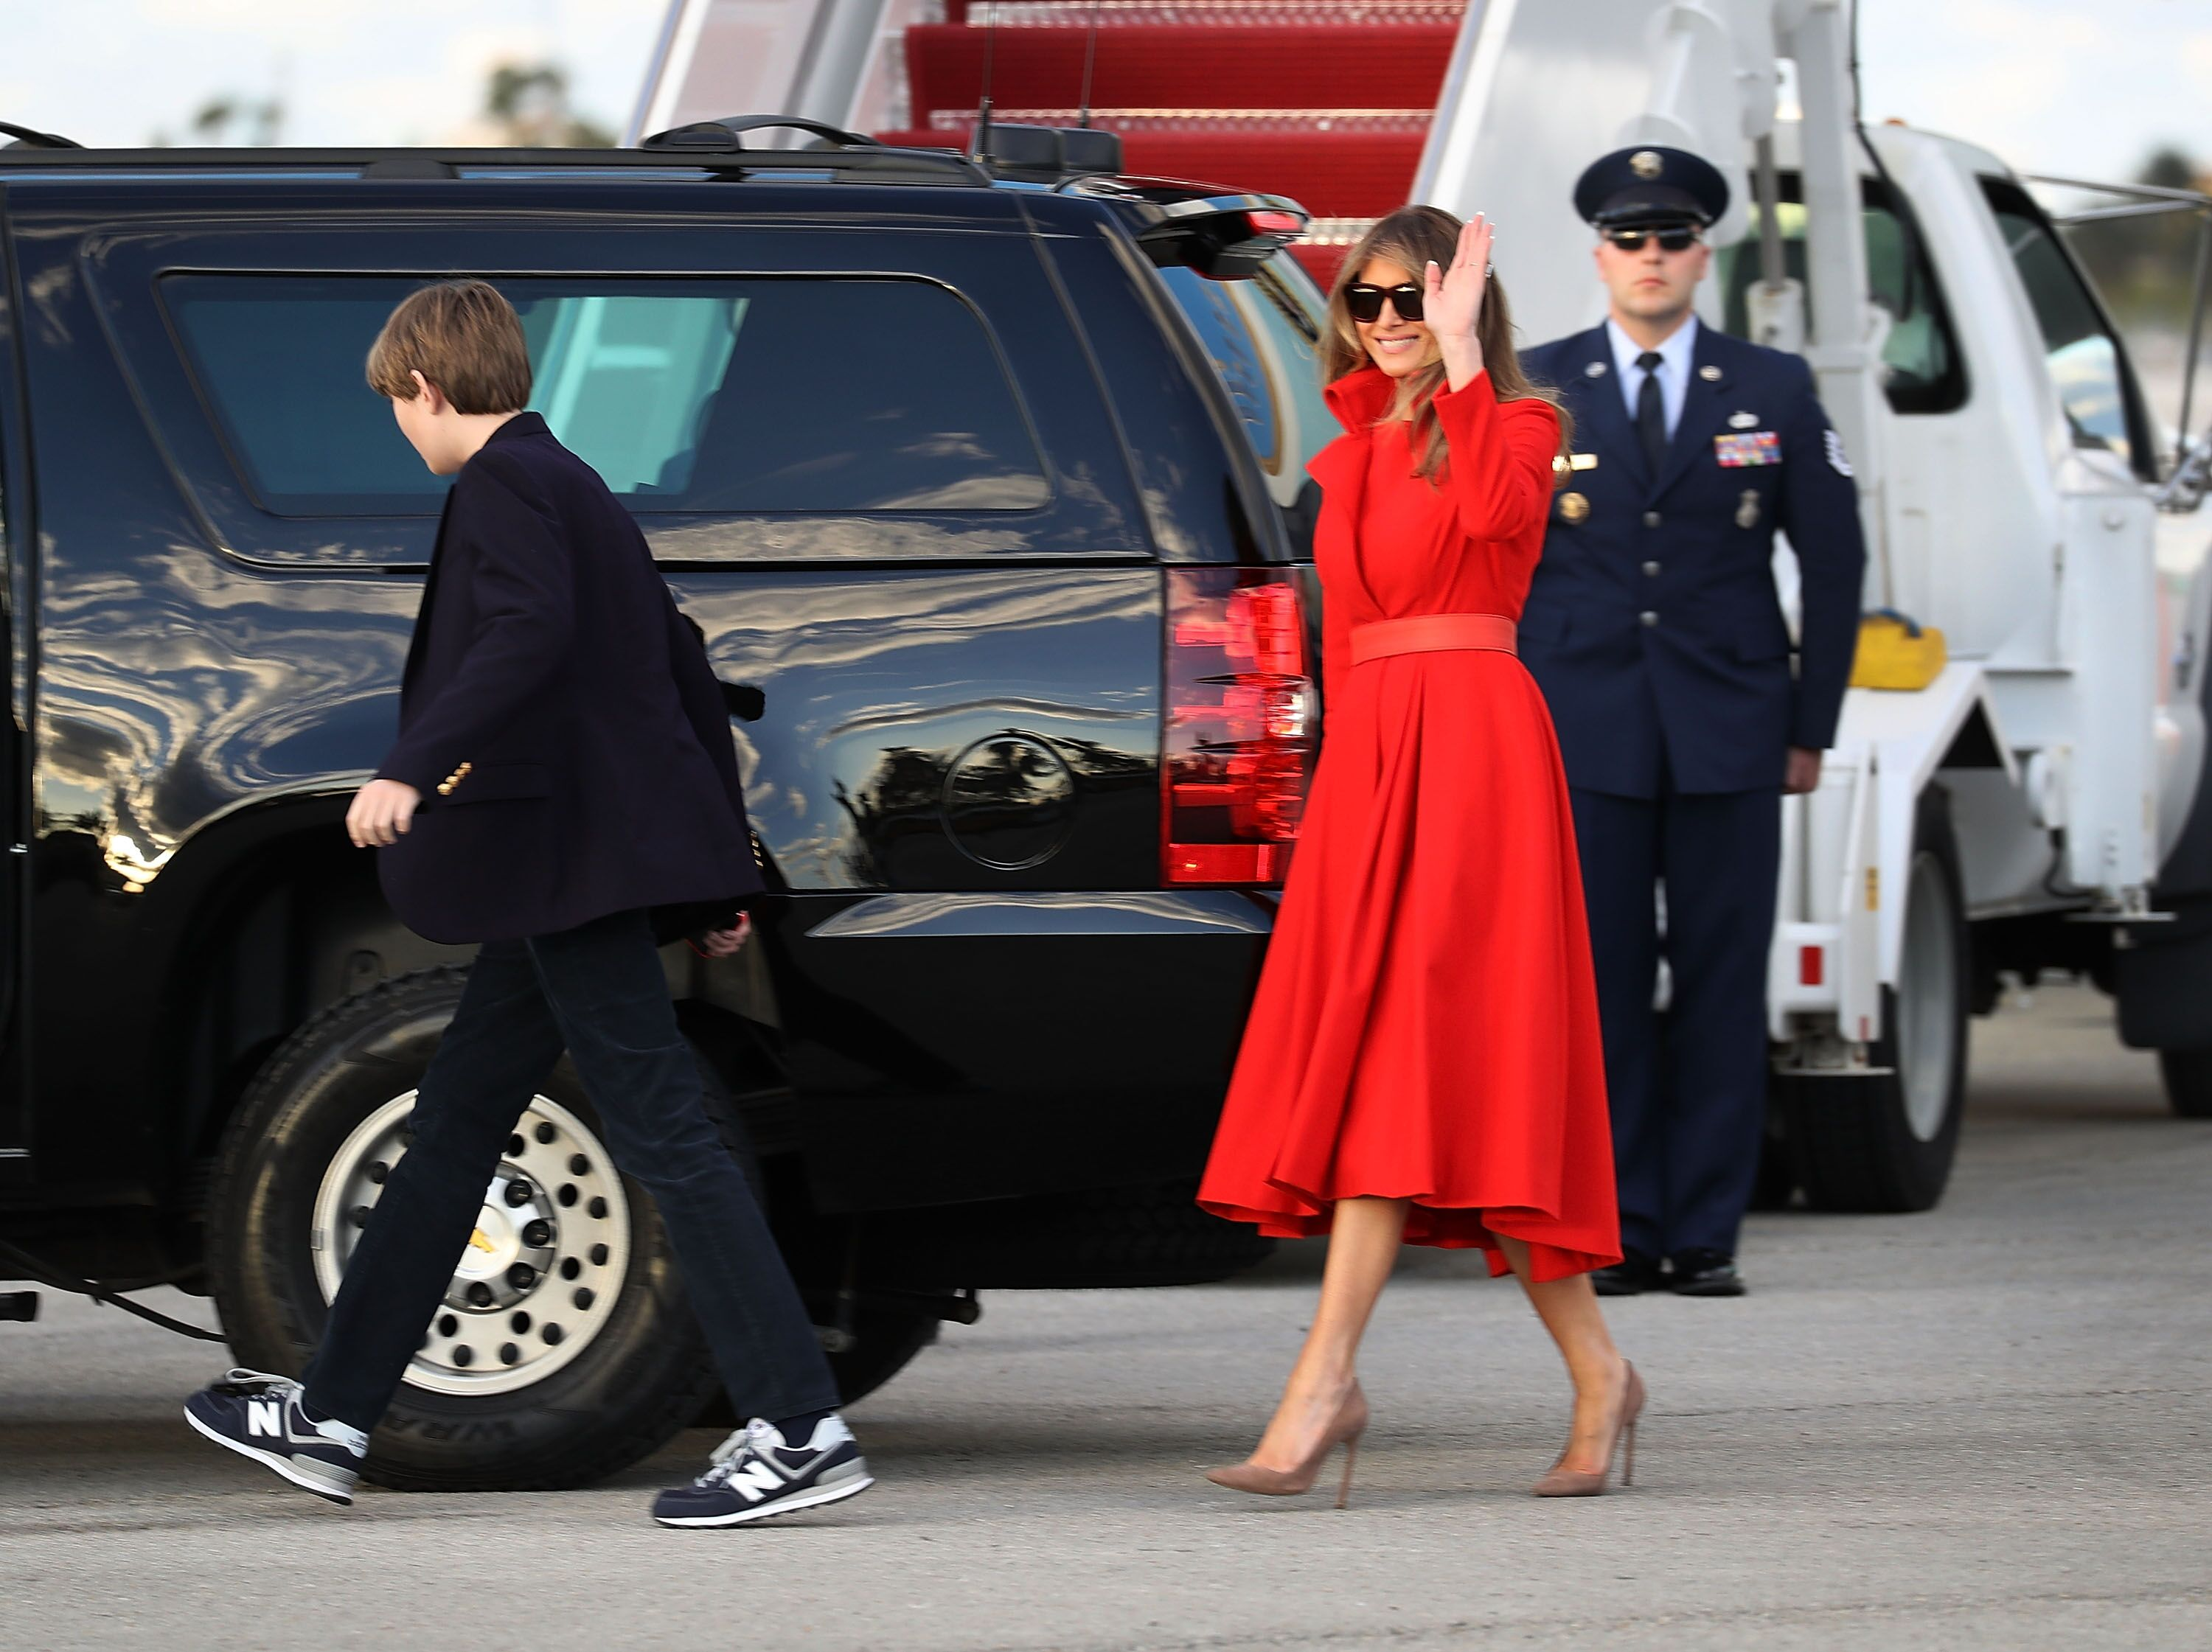 Melania Trump and her son, Barron Trump arriving on Air Force One at the Palm Beach International Airport in 2017 | Source: Getty Images